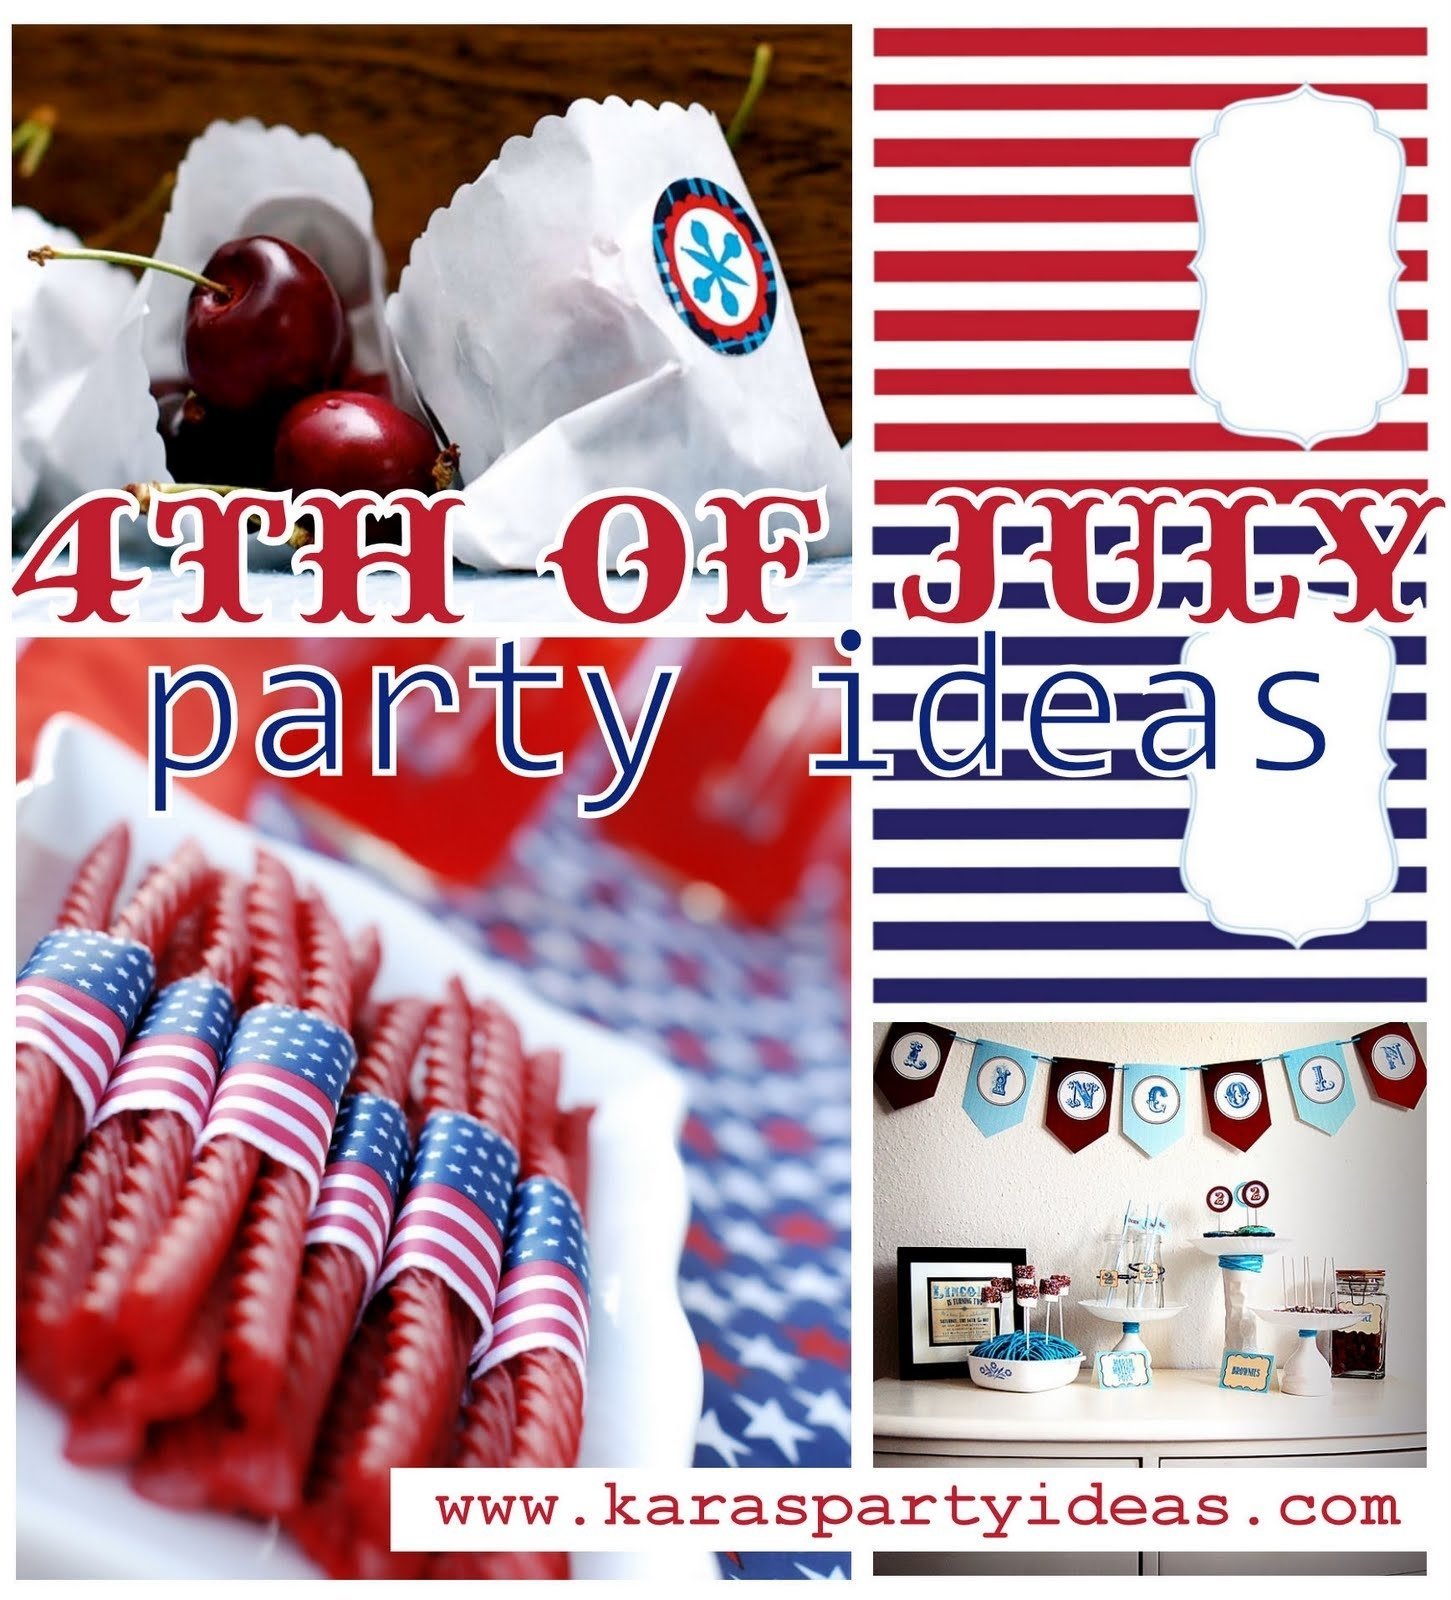 kara's party ideas 4th of july party idea roundup - party on a